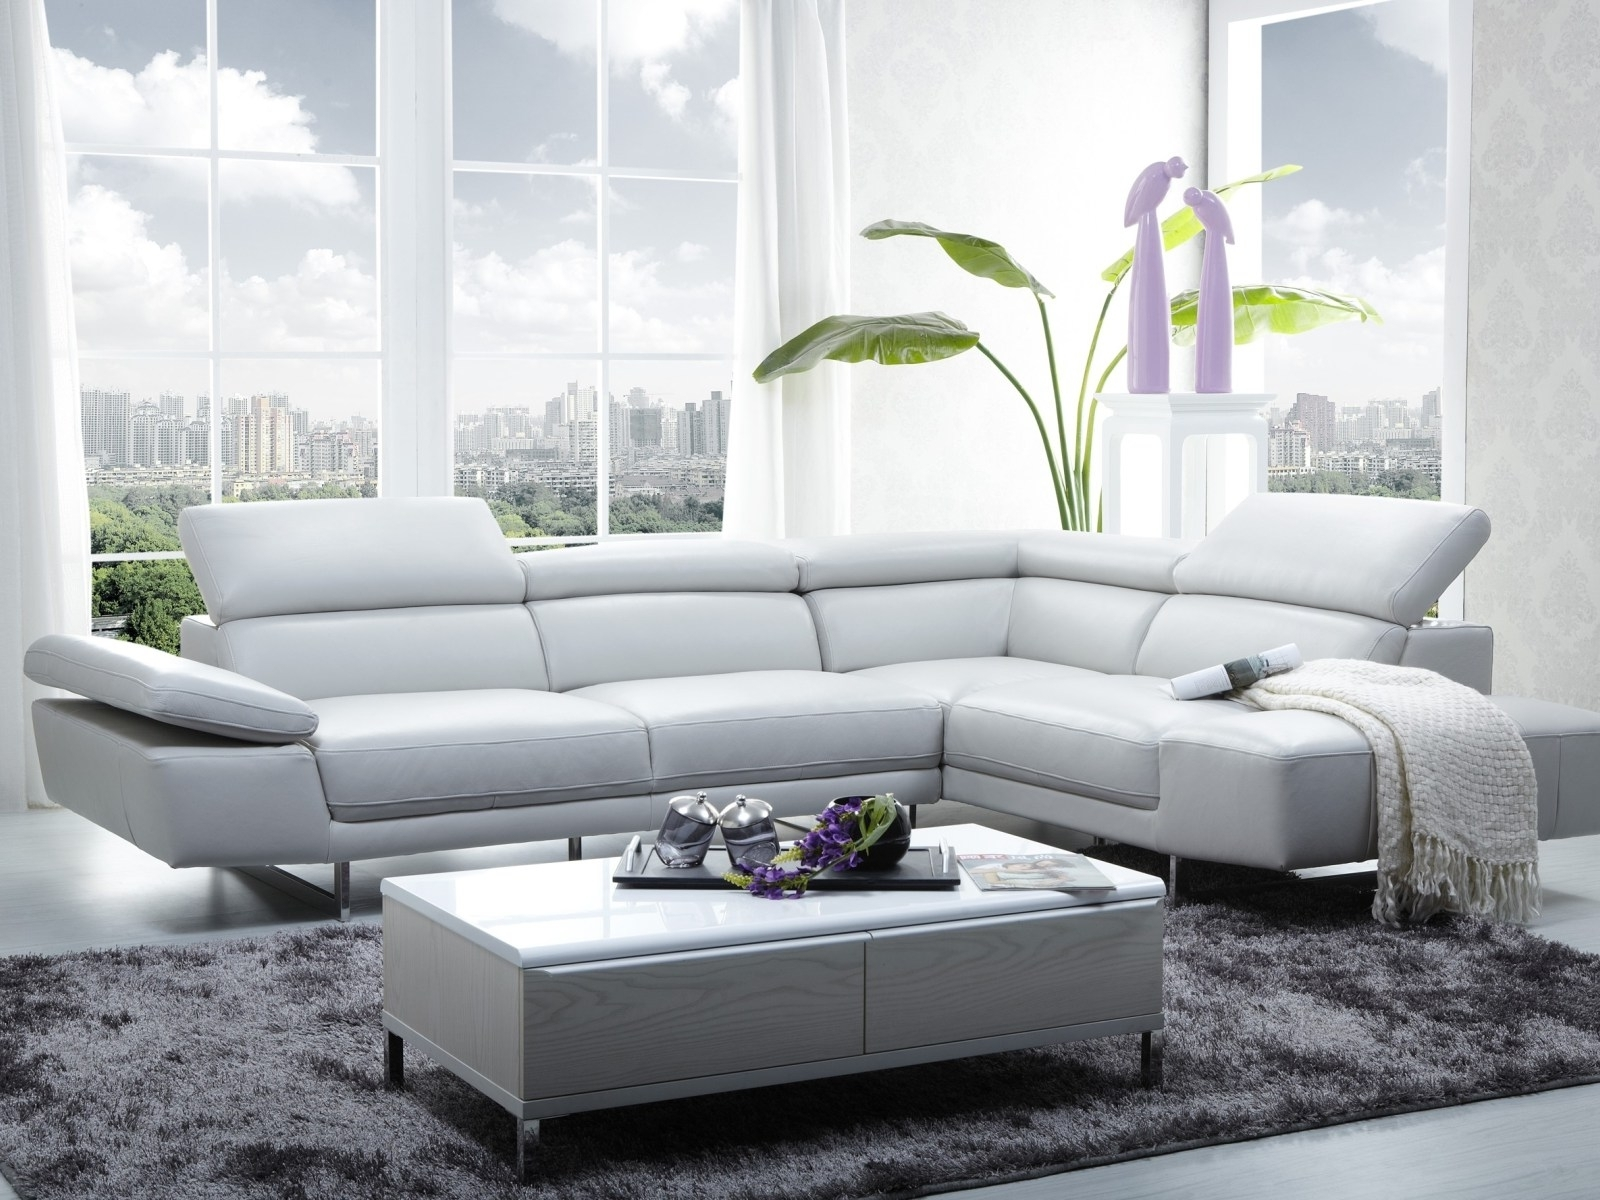 ▻ Sofa : 15 3058702 Poster P 1 A Modular Sofa That Can Rearrange Pertaining To Most Recently Released Sectional Sofas That Can Be Rearranged (View 4 of 15)